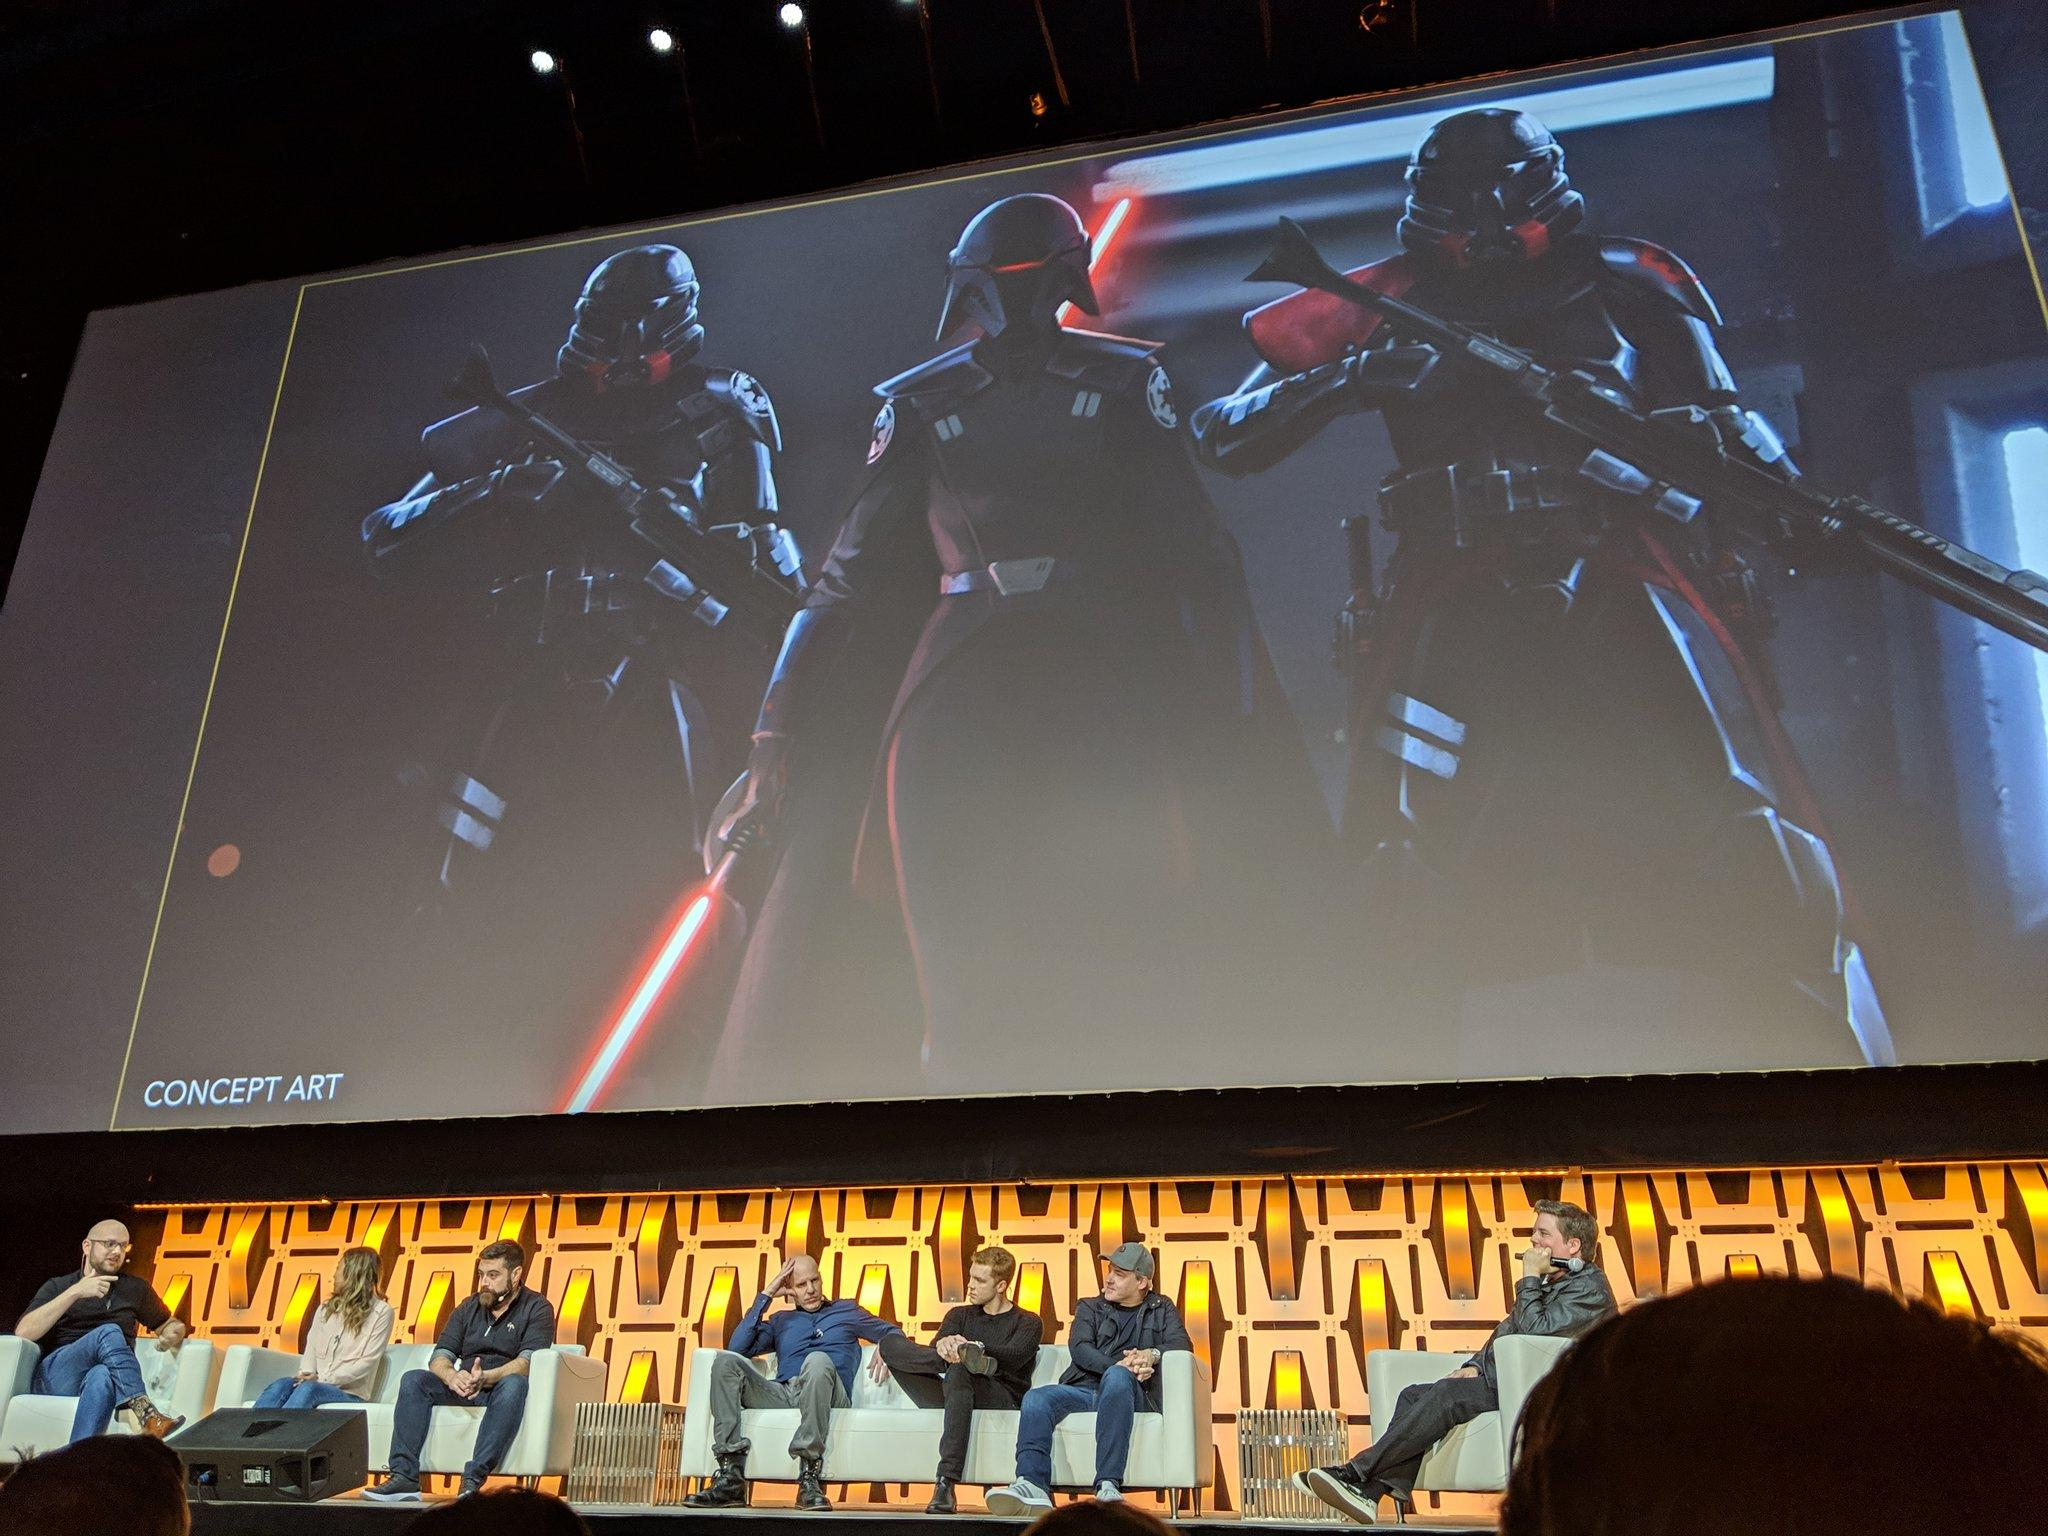 star-wars-jedi-fallen-order-second-sister-purge-troopers-mike-sorrentino-cnet